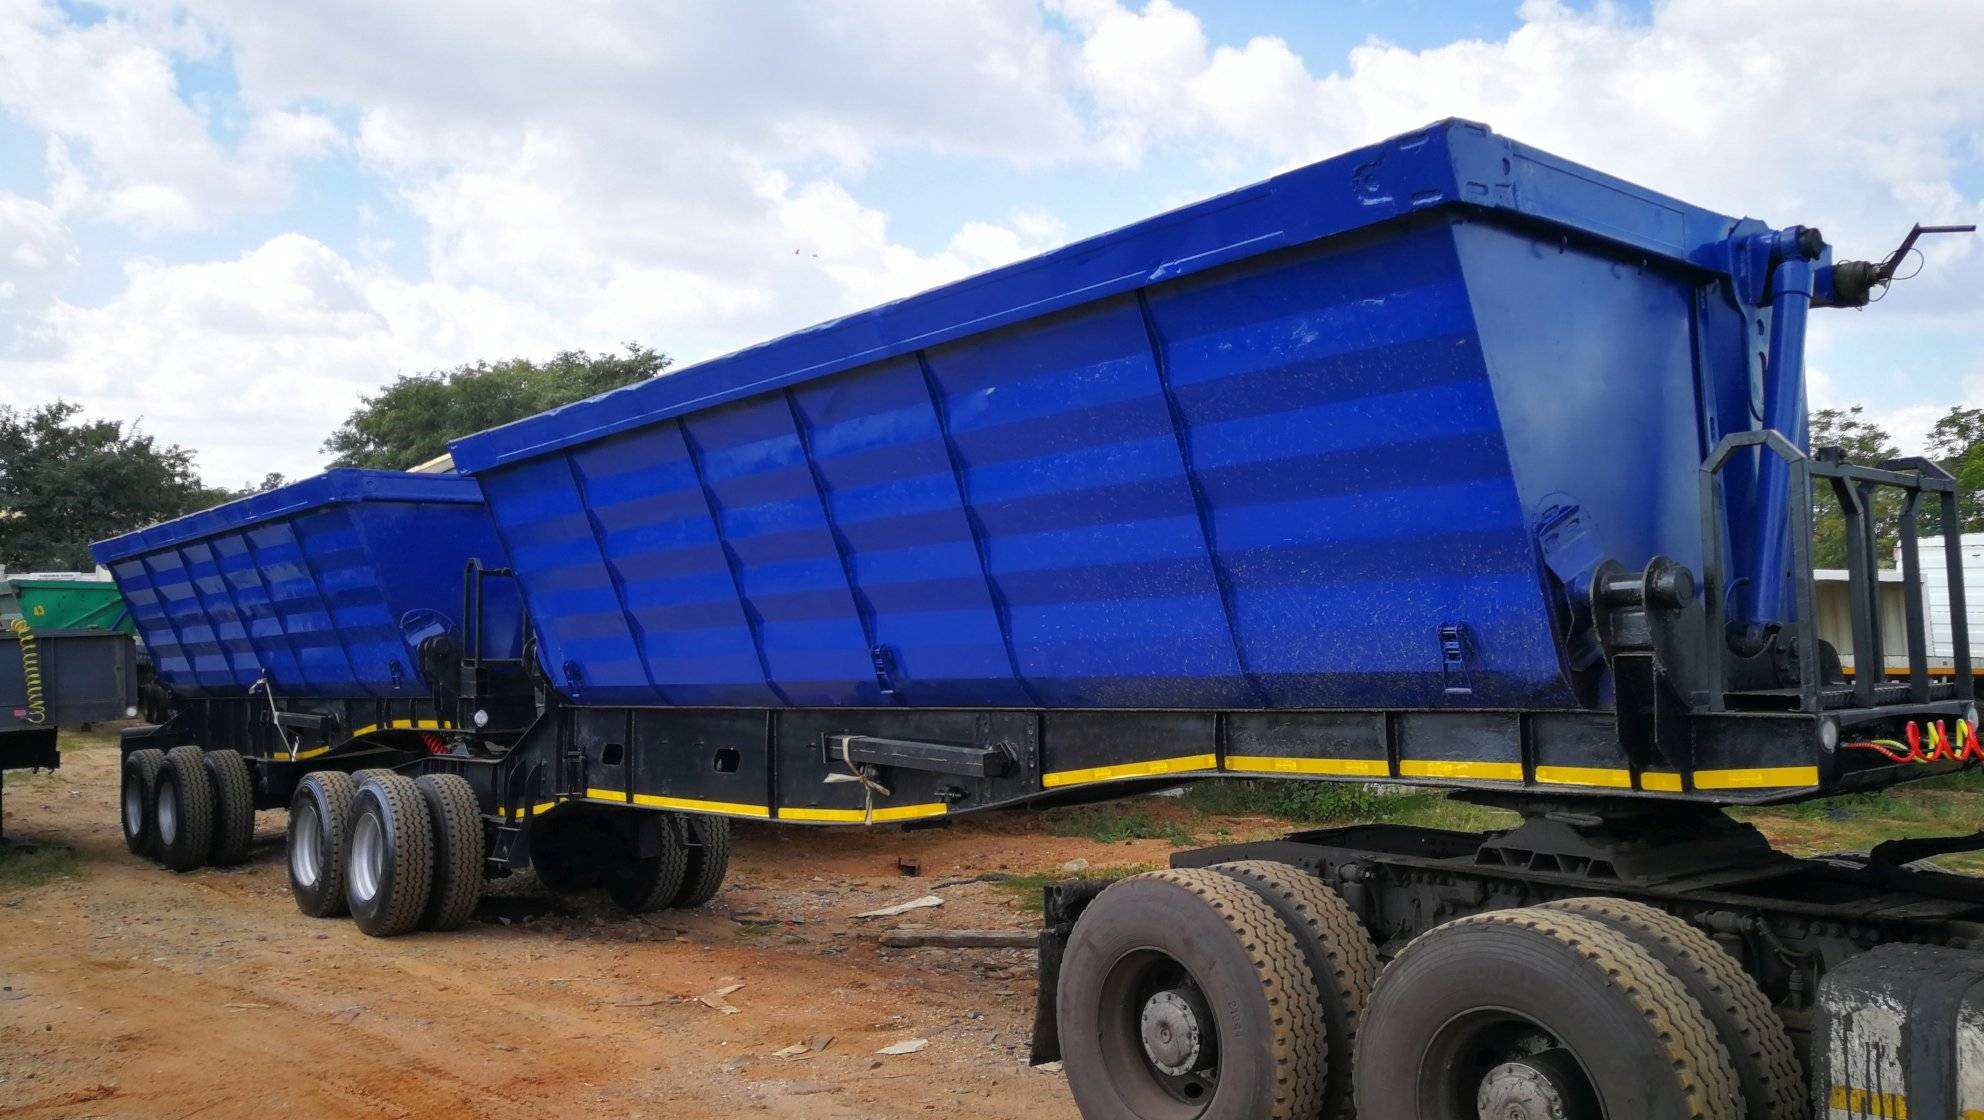 Start Your Own Trucking Business, 34 Ton Side Tippers, Become A Trucker, New Truckers Welcome, Eastern Cape Province, South Africa